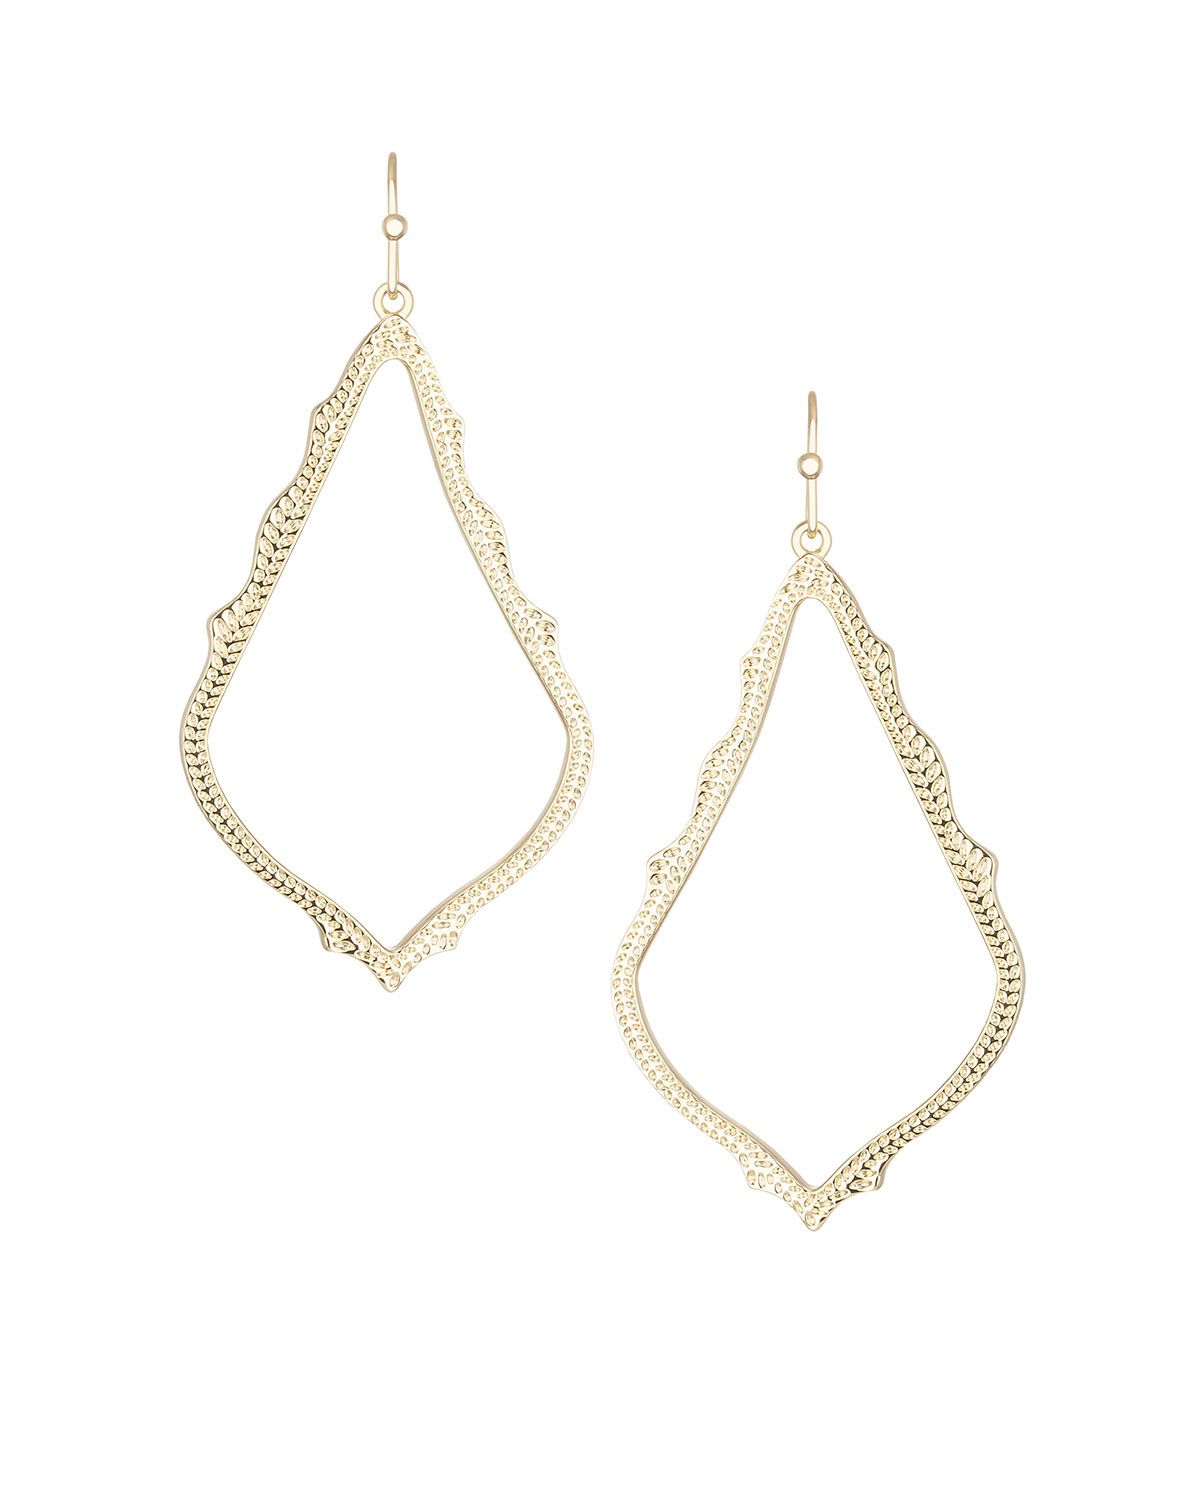 Kendra Scott Jewelry Earrings | Neiman Marcus Pertaining To Allie Jade Sofa Chairs (View 18 of 25)